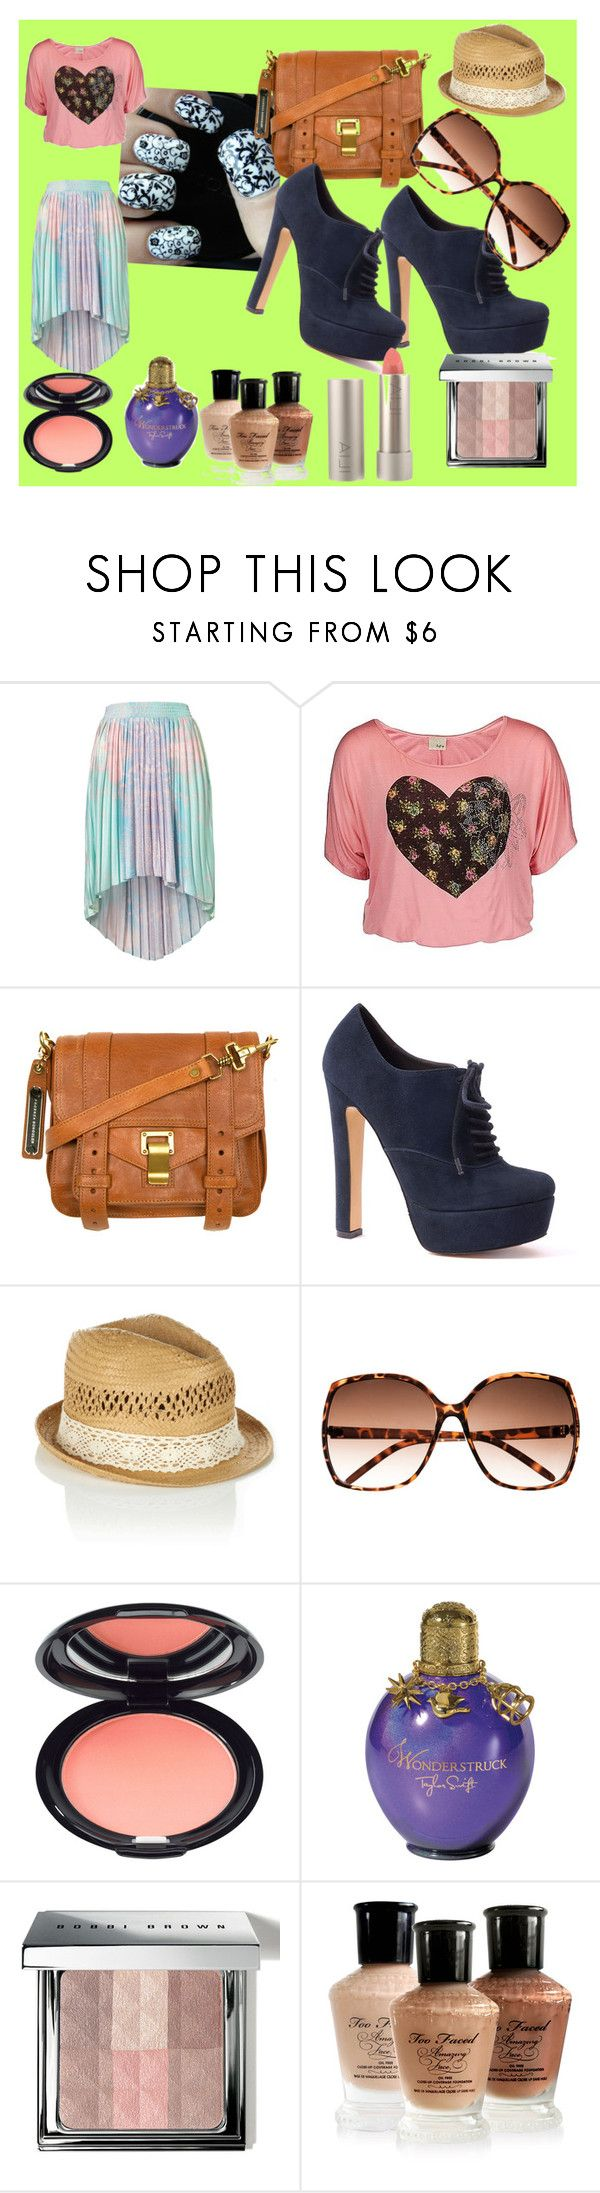 """""""BUBLE GUM"""" by skinnyfuschia ❤ liked on Polyvore featuring Daytrip, Proenza Schouler, Damsel in a Dress, Oasis, H&M, Stila, Bobbi Brown Cosmetics and Ilia"""